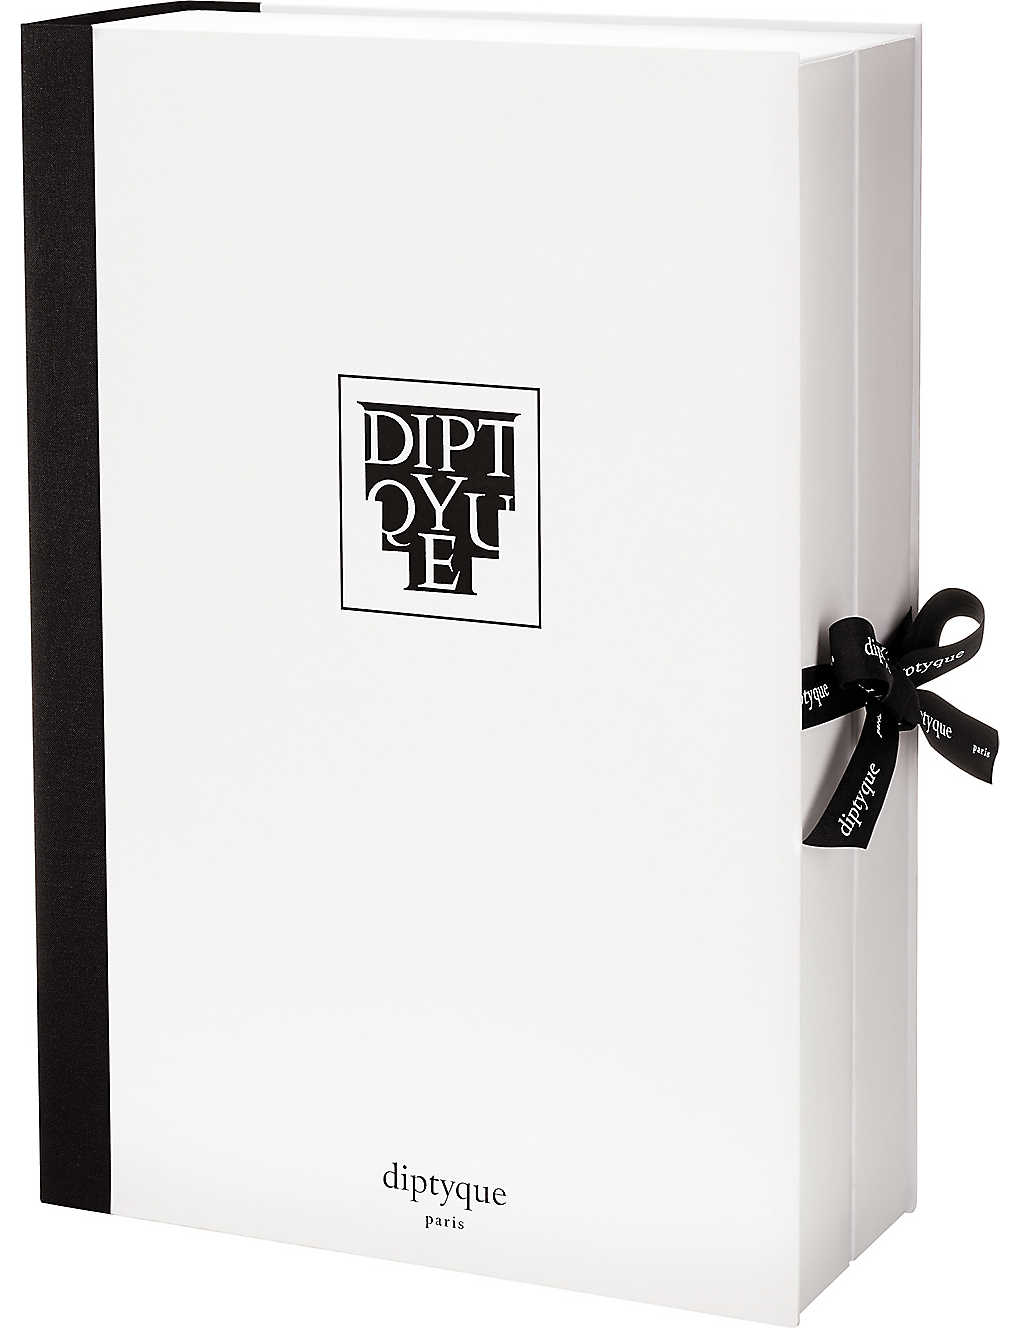 DIPTYQUE: Advent Calendar 2015